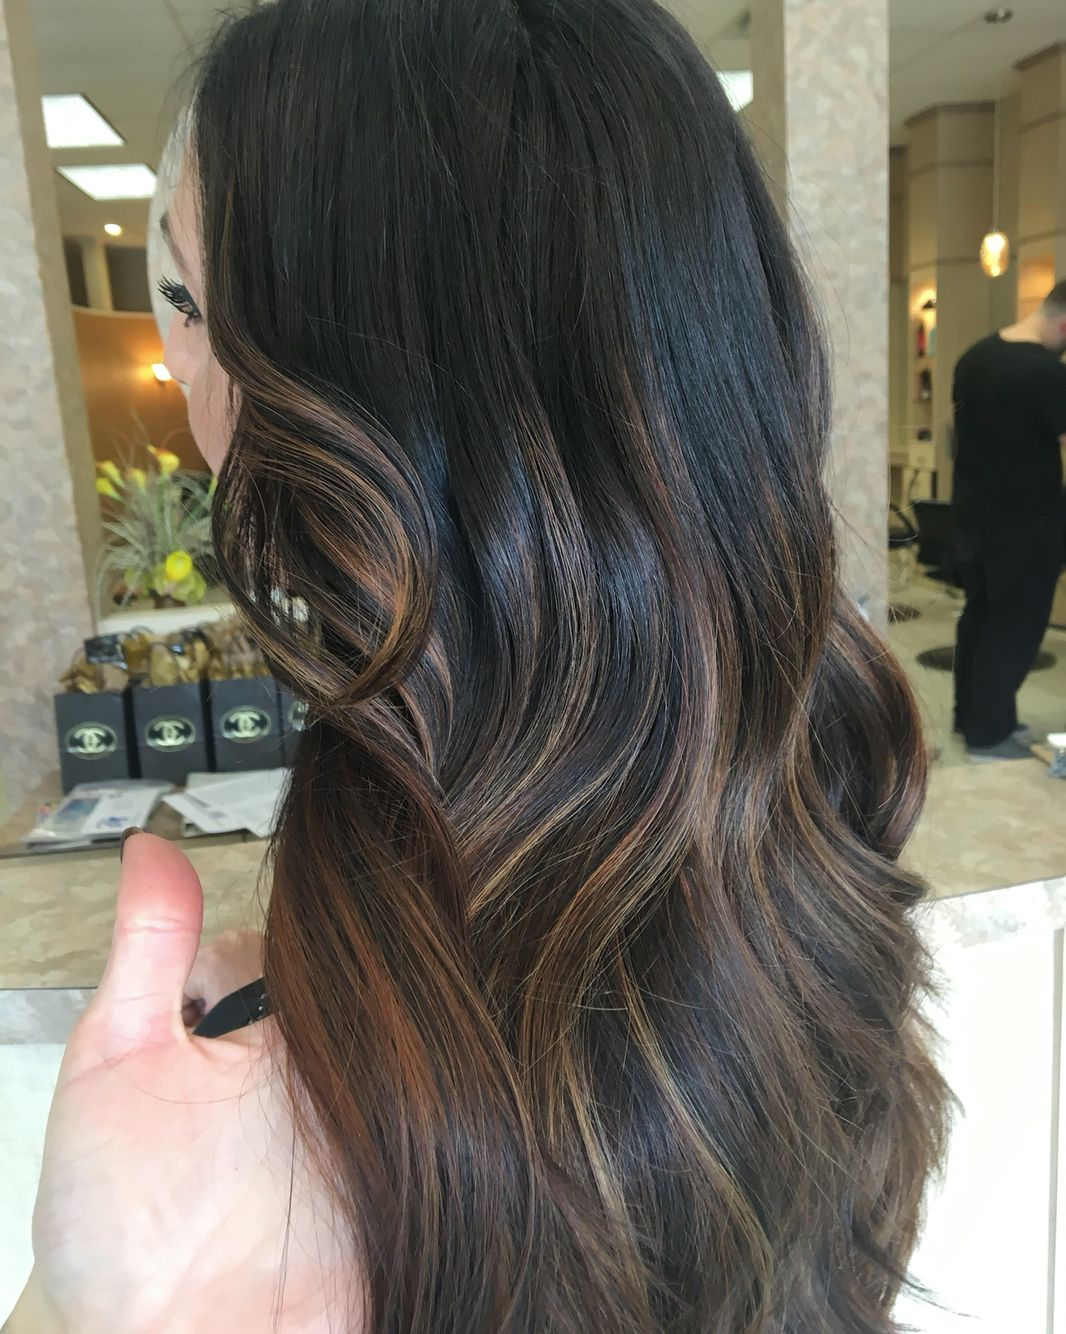 Long Hair Layers Dark Root Sombre Balayage Hand Painted Brown Caramel Highlights Hairbynickyz Ig Hairbynickyz Layered Hair Long Hair Styles Long Layered Hair